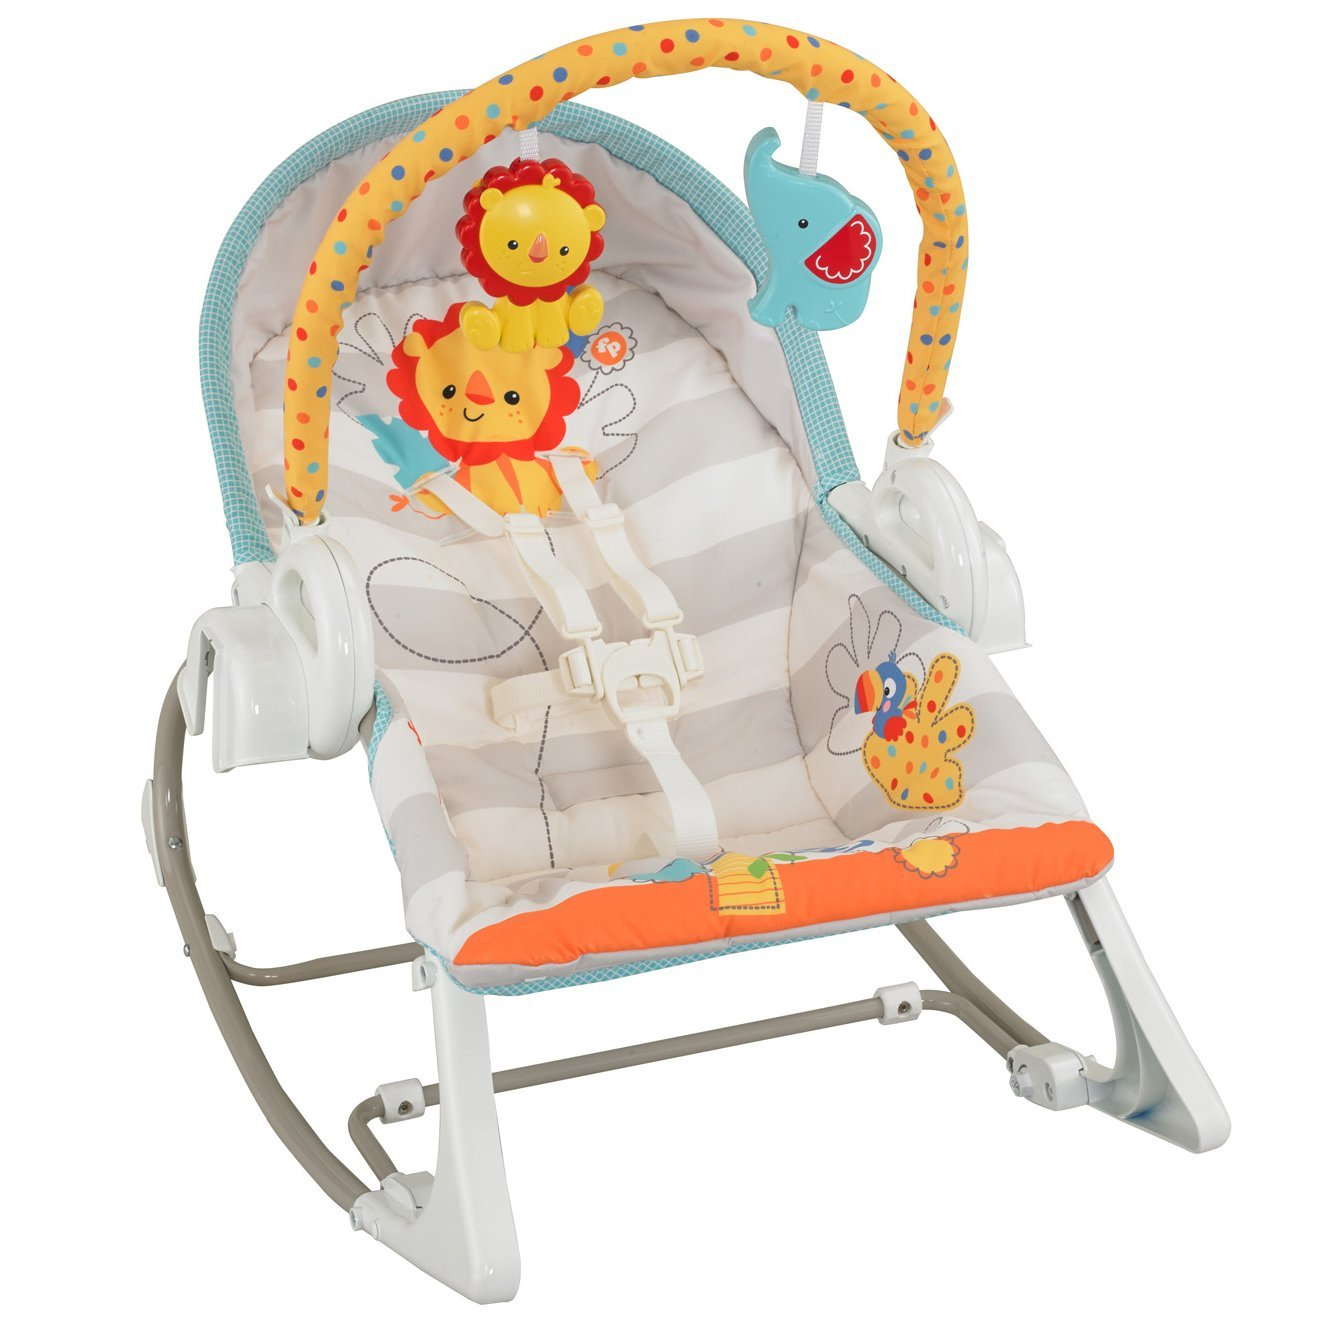 Toddler Rocker Chair New Fisher Price 3 In 1 Swing N Rocker Musical Baby Swing